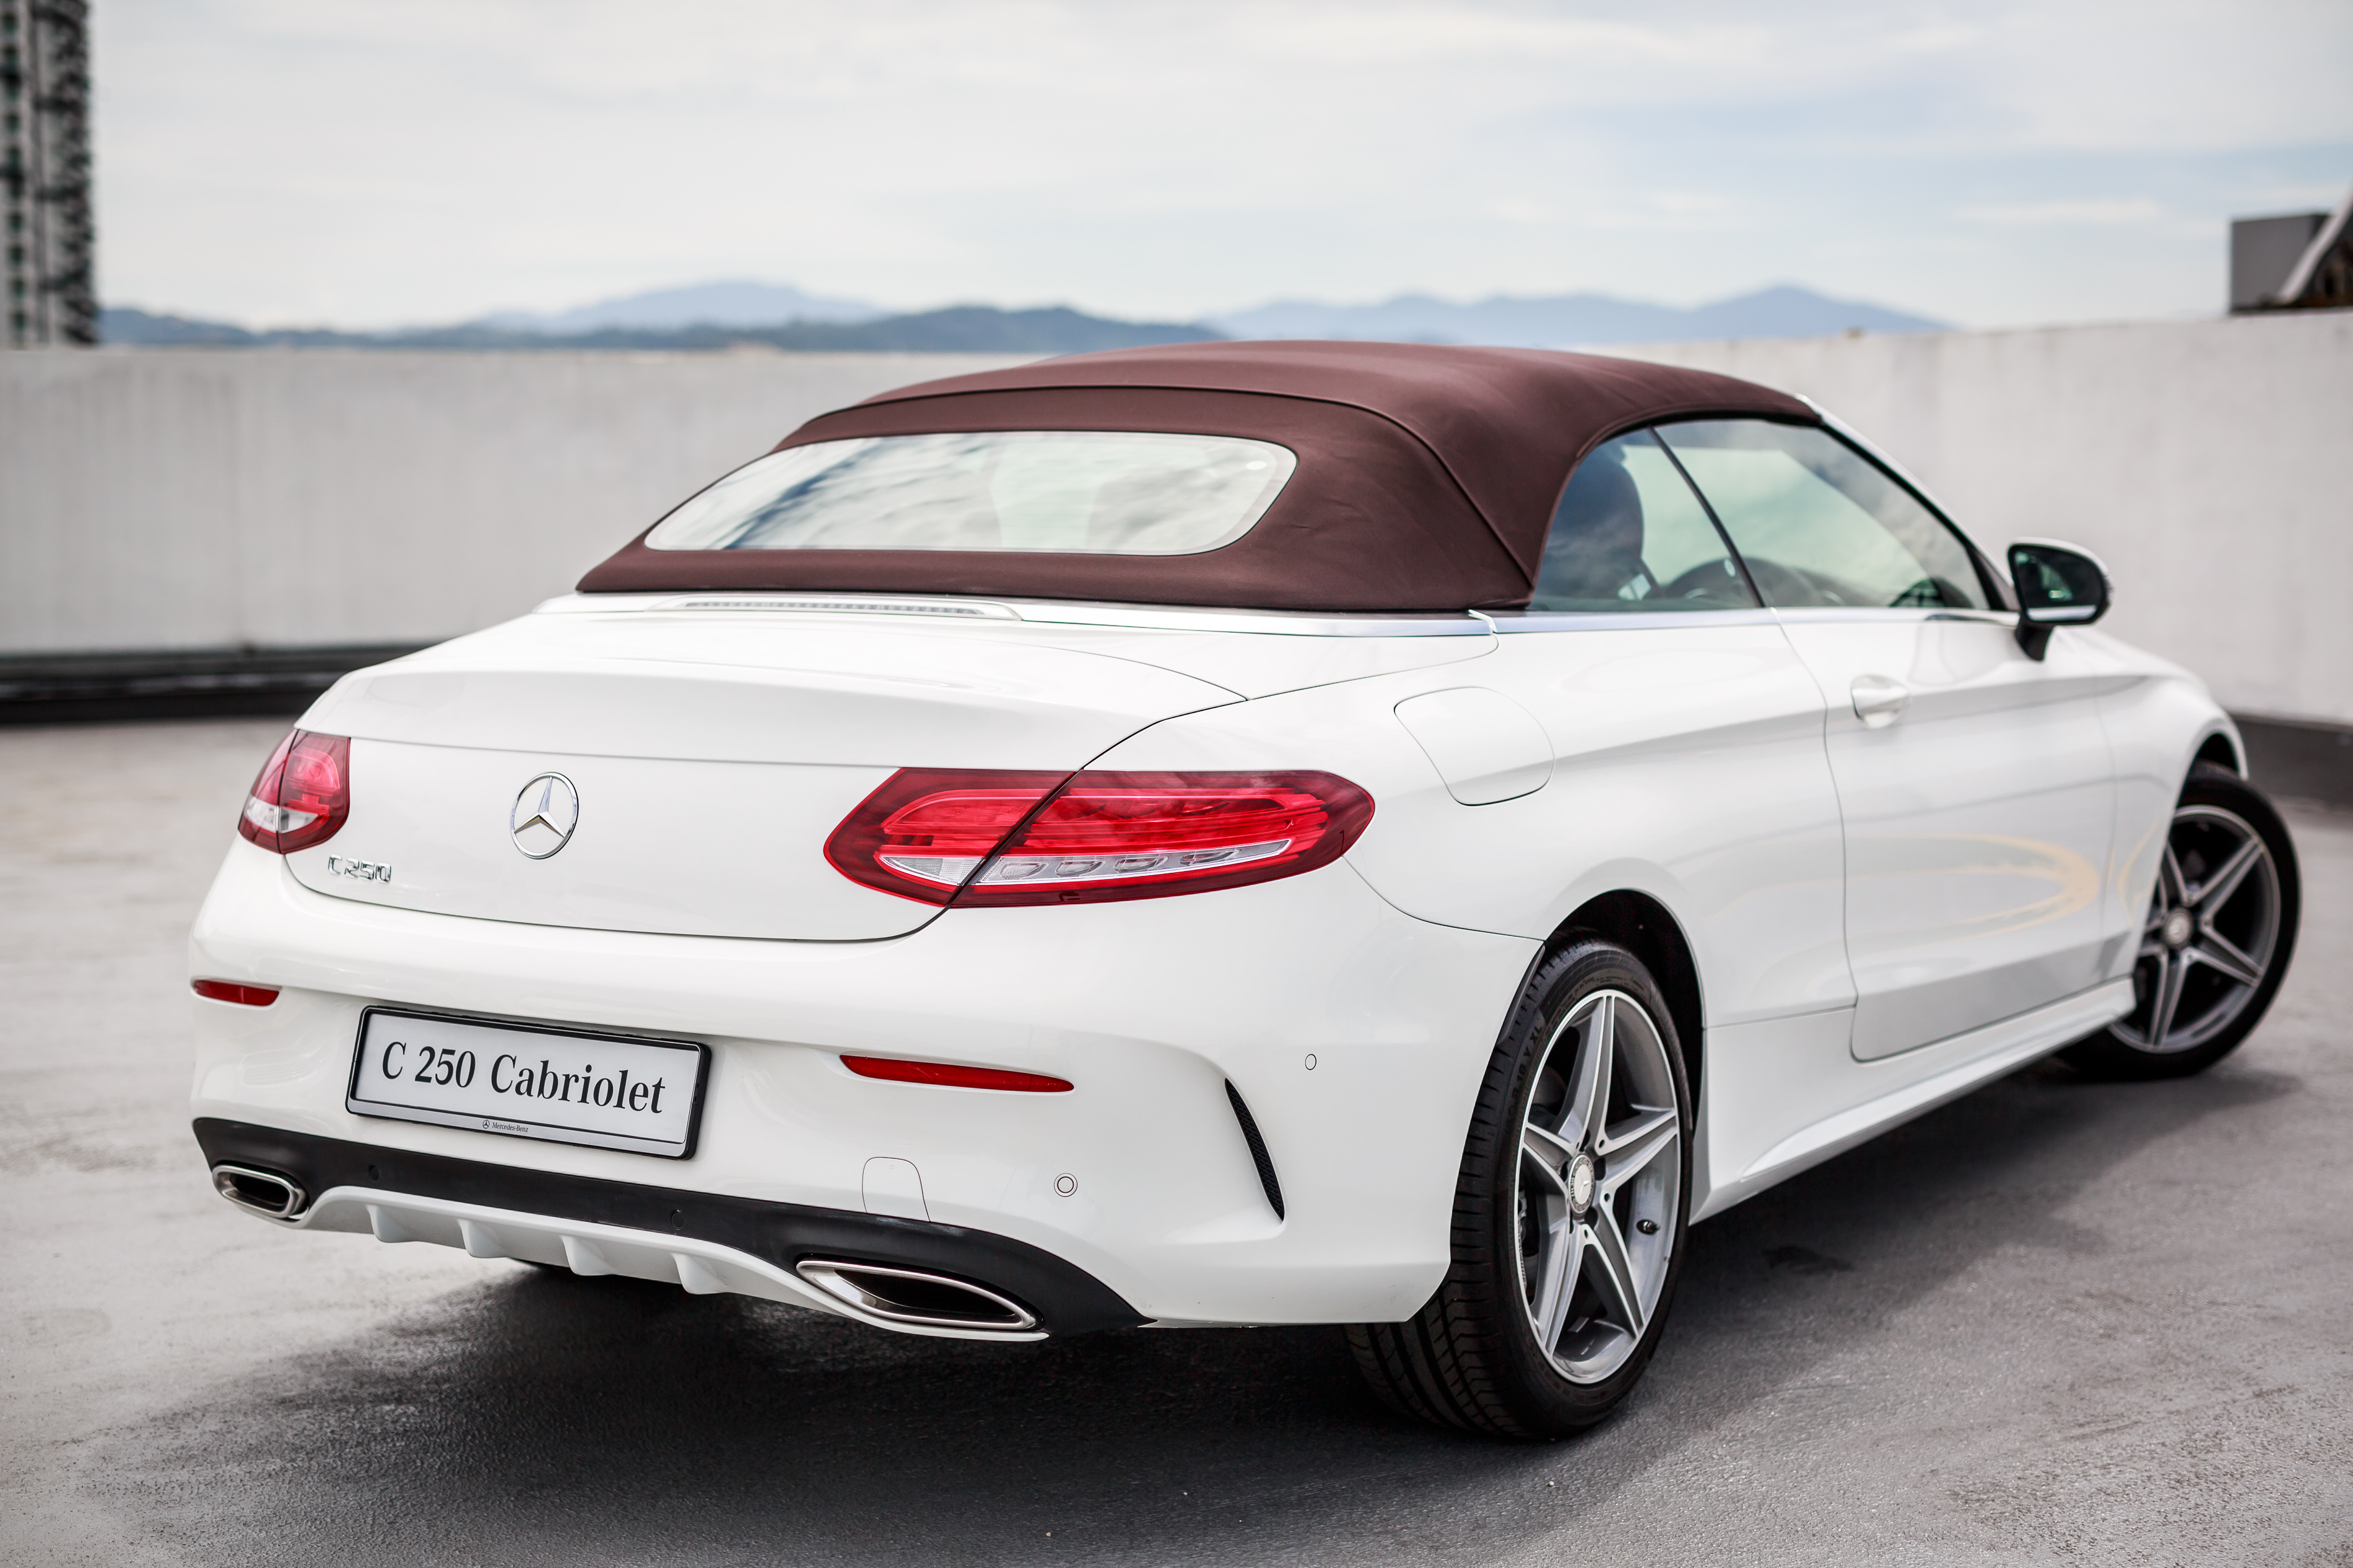 mercedes benz c class cabriolet launched in malaysia c200 rm359k c250 rm389k c300 rm444k. Black Bedroom Furniture Sets. Home Design Ideas